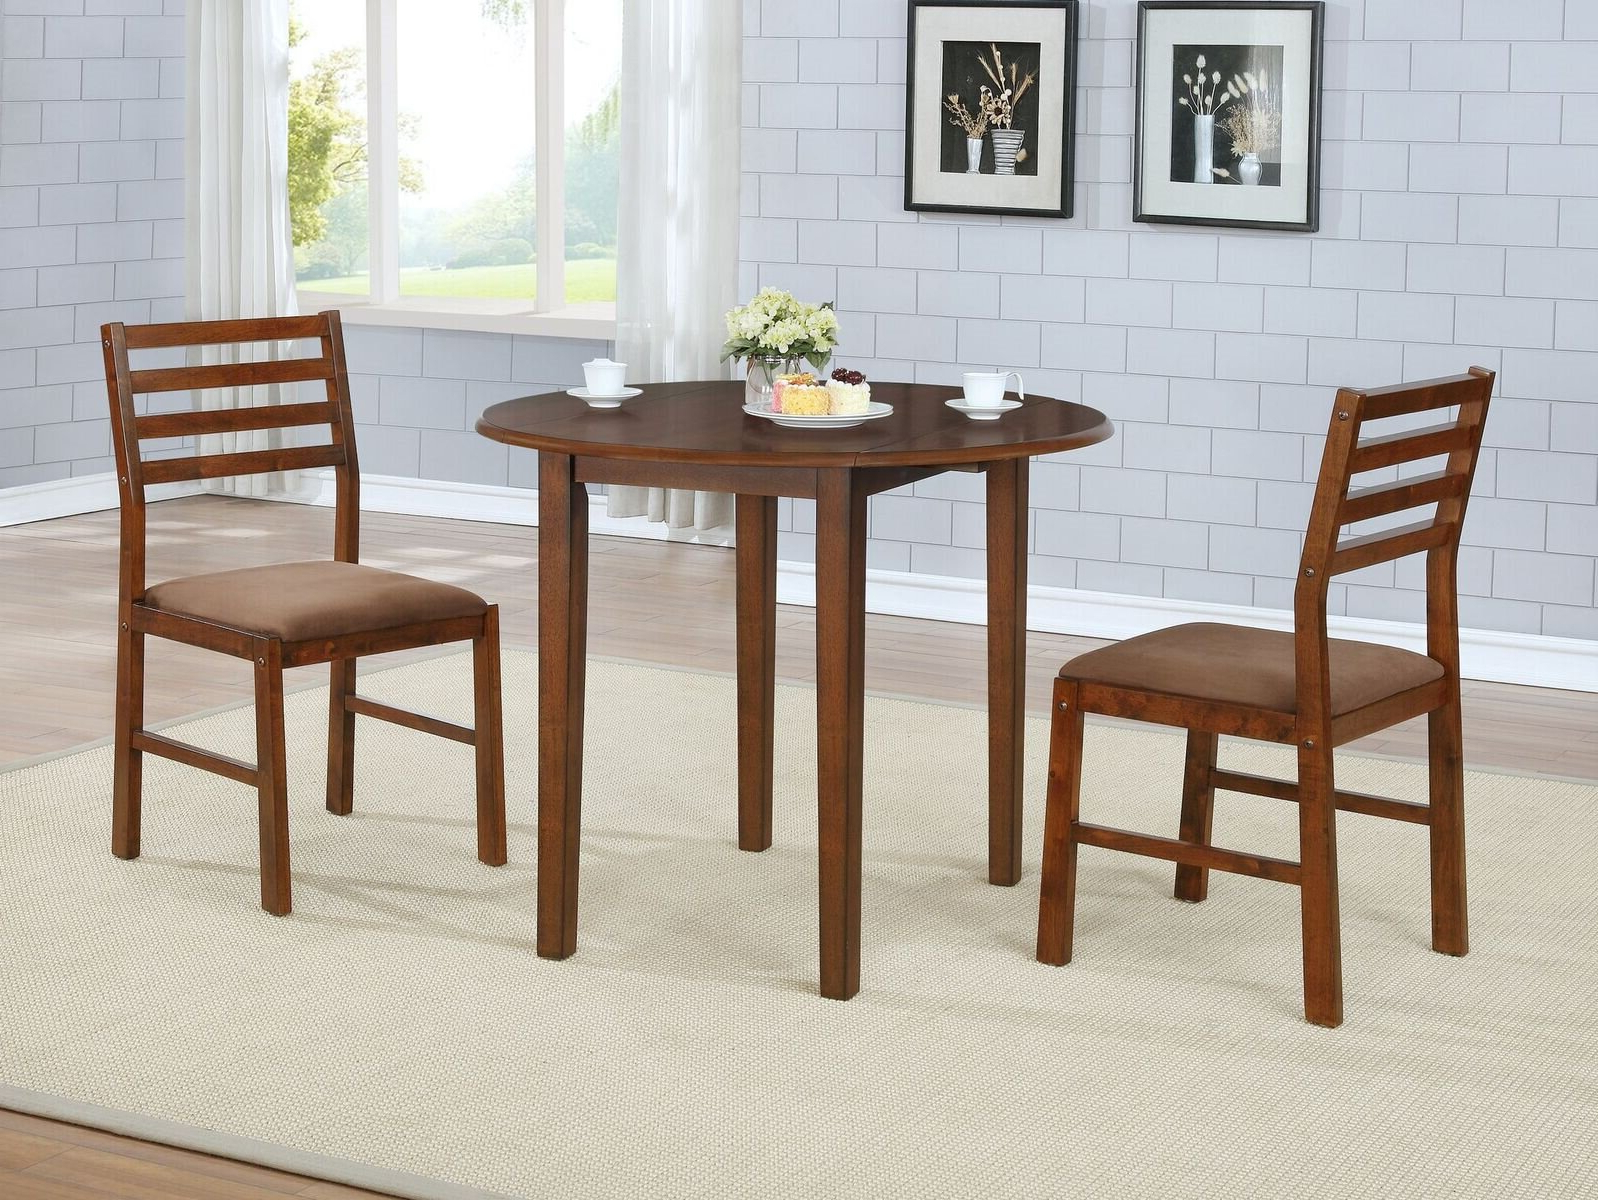 Transitional 4 Seating Drop Leaf Casual Dining Tables Intended For Fashionable Winston Porter Broughton 3 Piece Drop Leaf Solid Wood Dining (View 8 of 25)